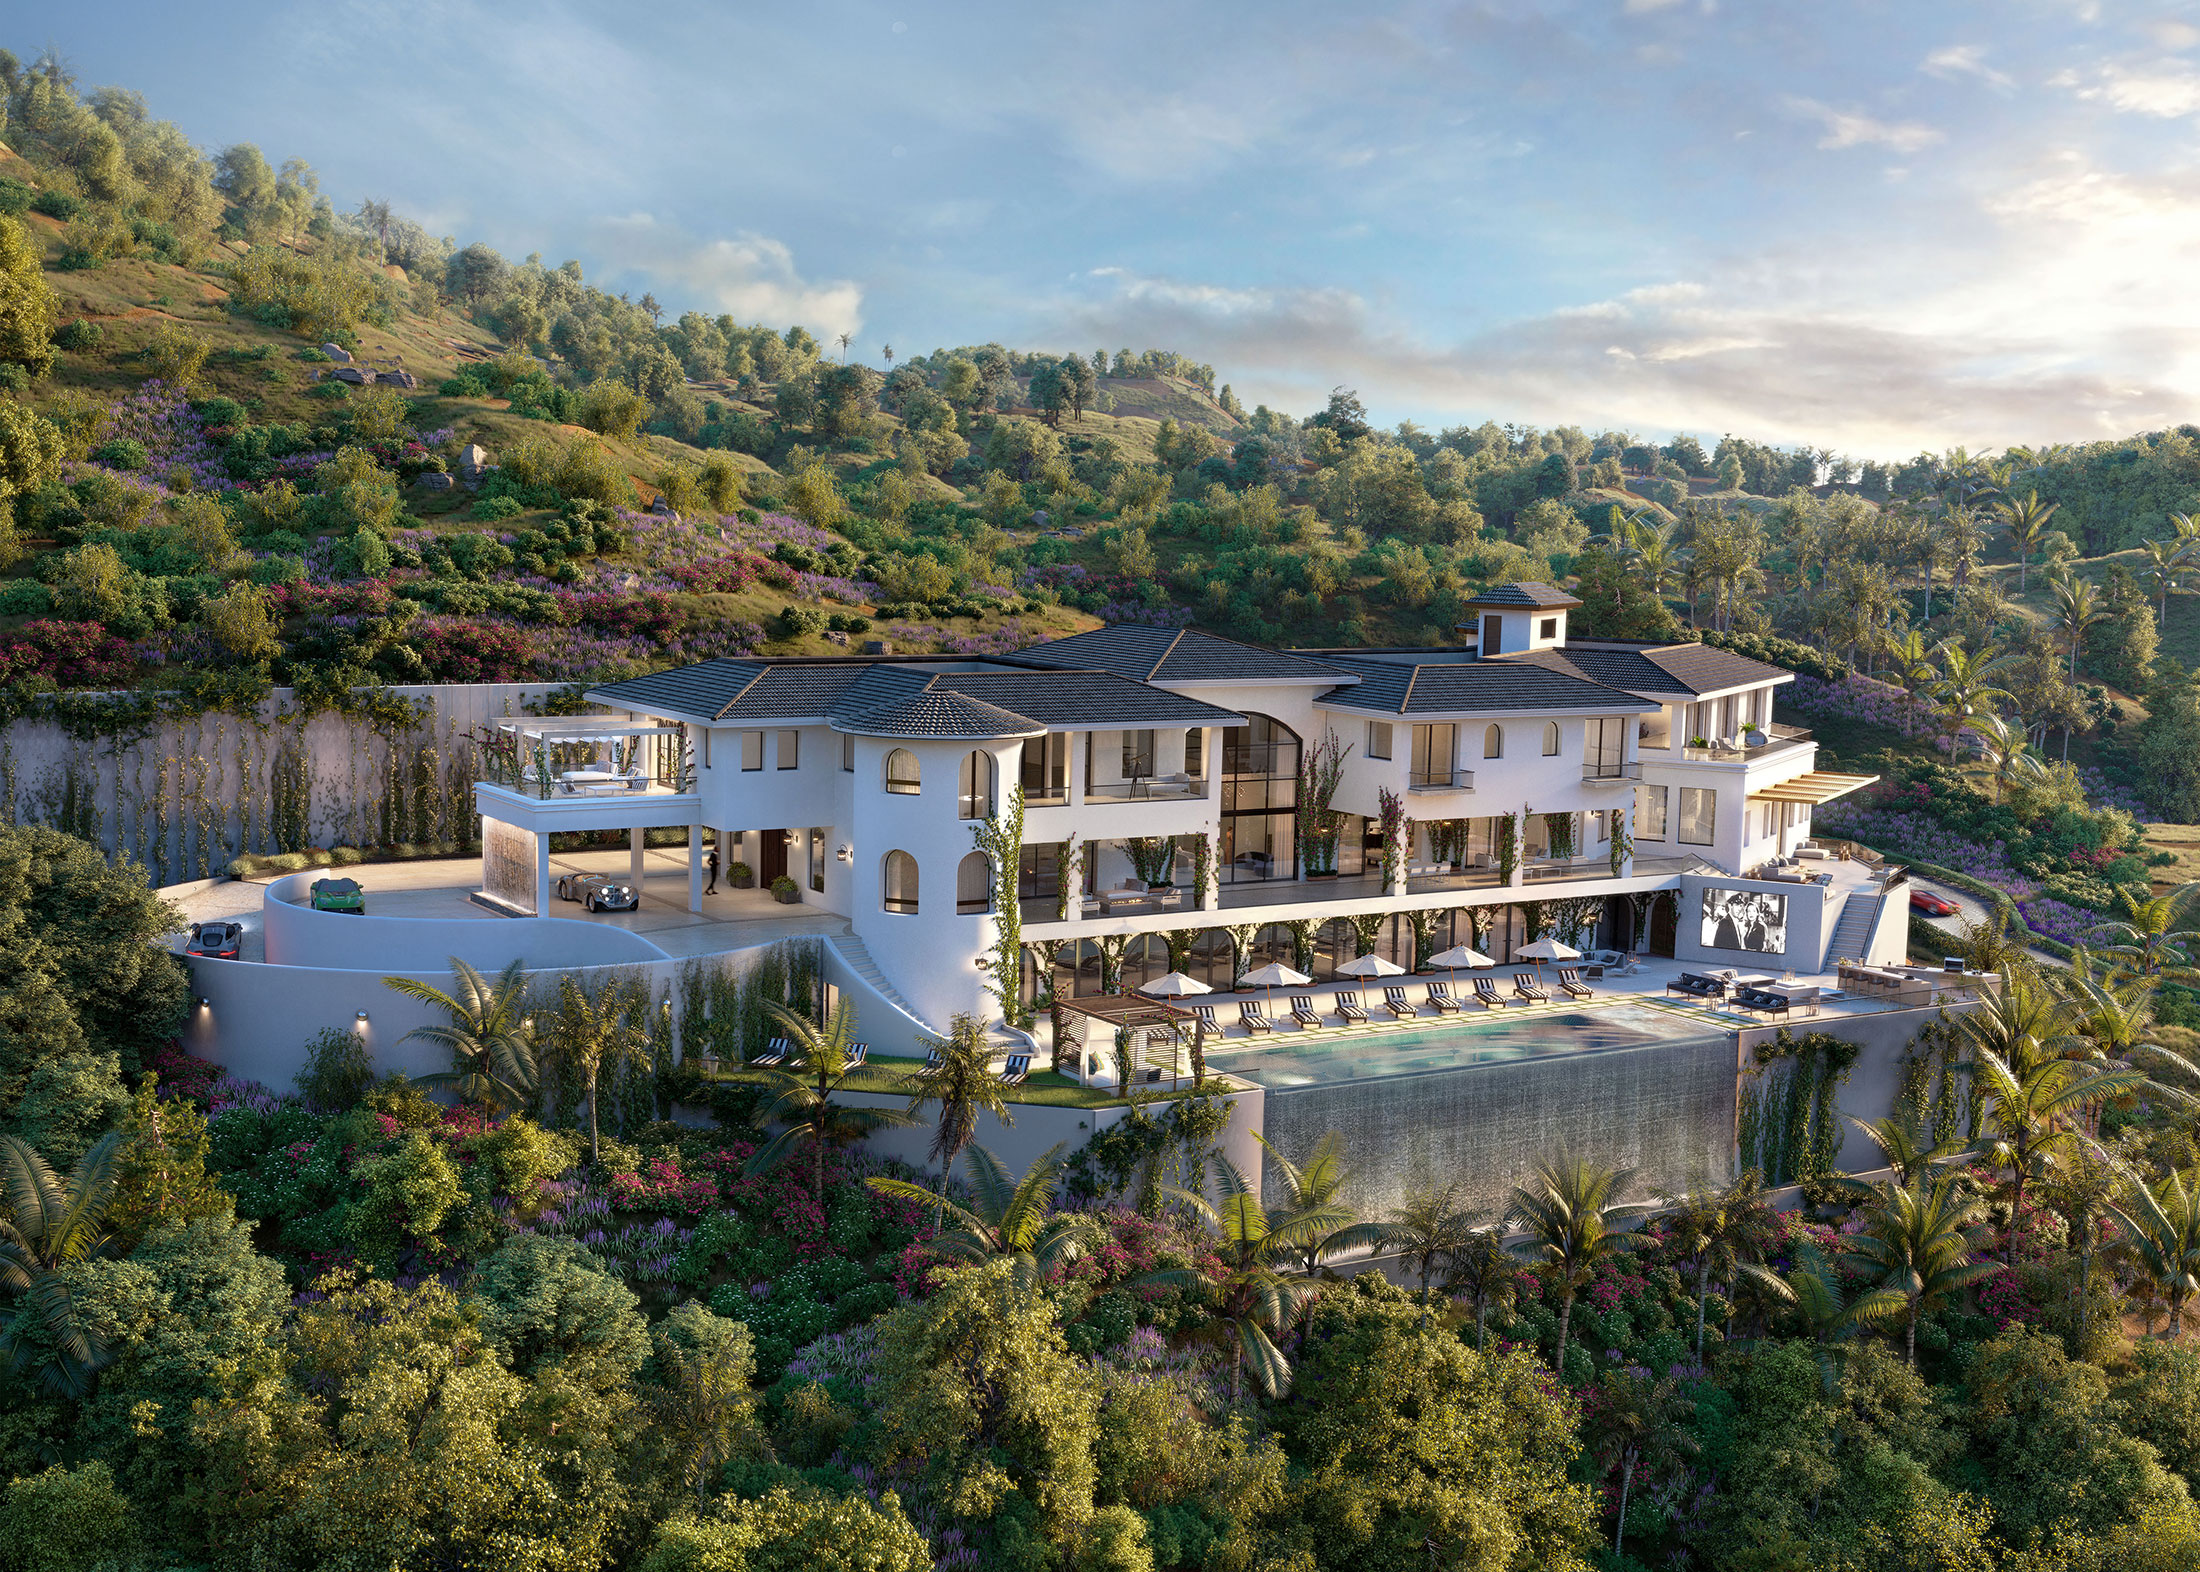 Architectural Rendering of an aerial view of the 10697 Somma Way project located in Los Angeles, California